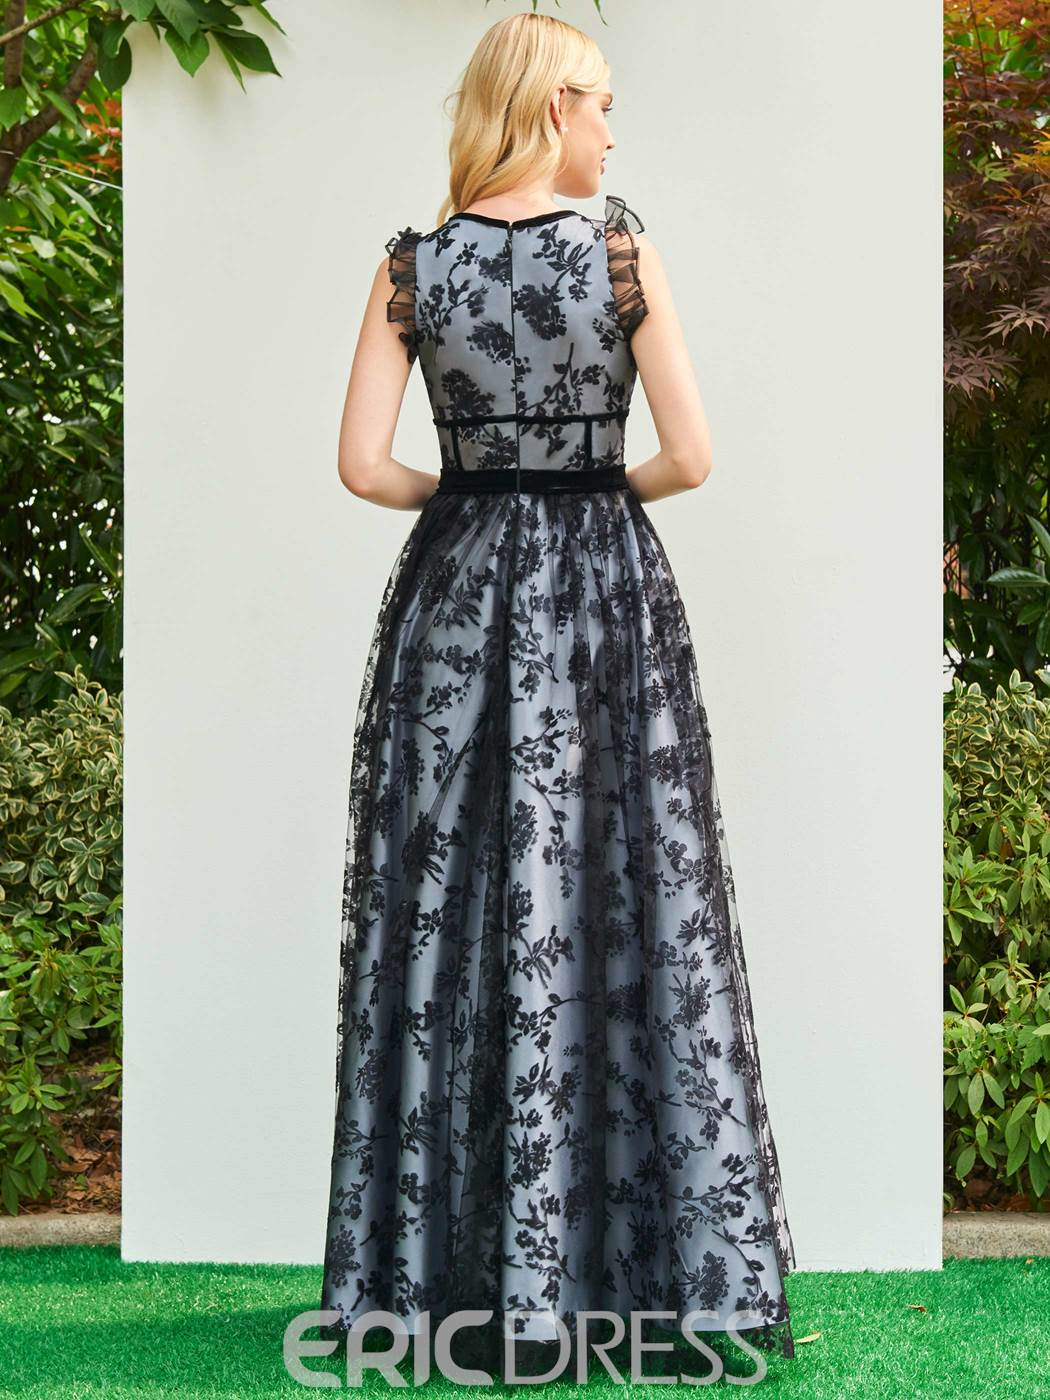 Ericdress A Line Parent-Child Floor Length Long Lace Evening Dress